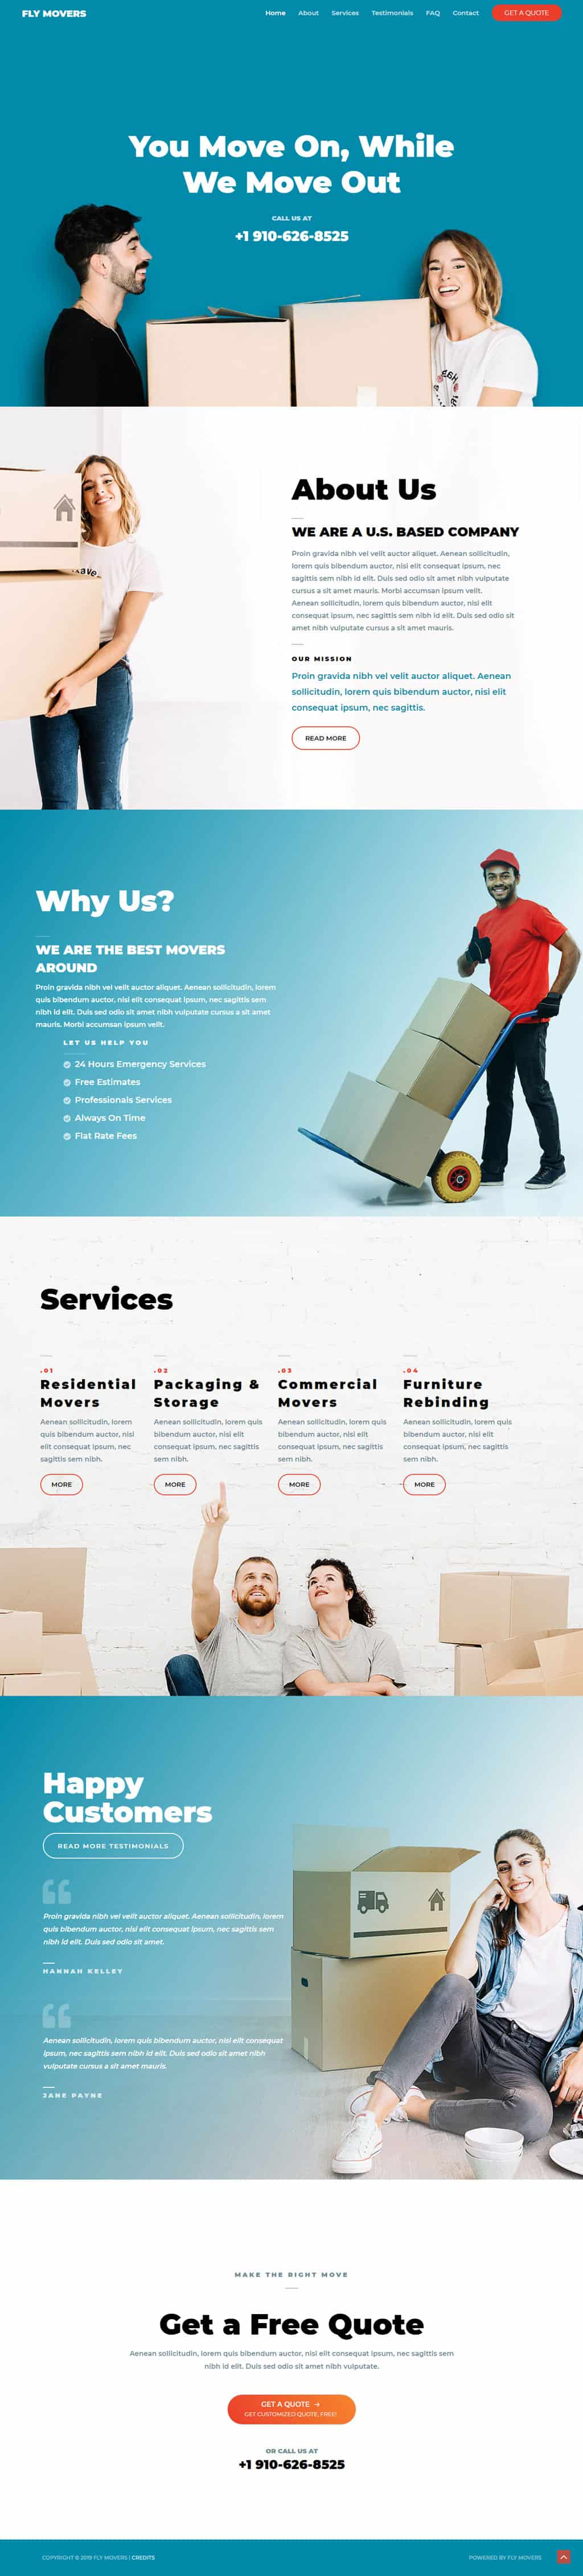 movers-packers-home